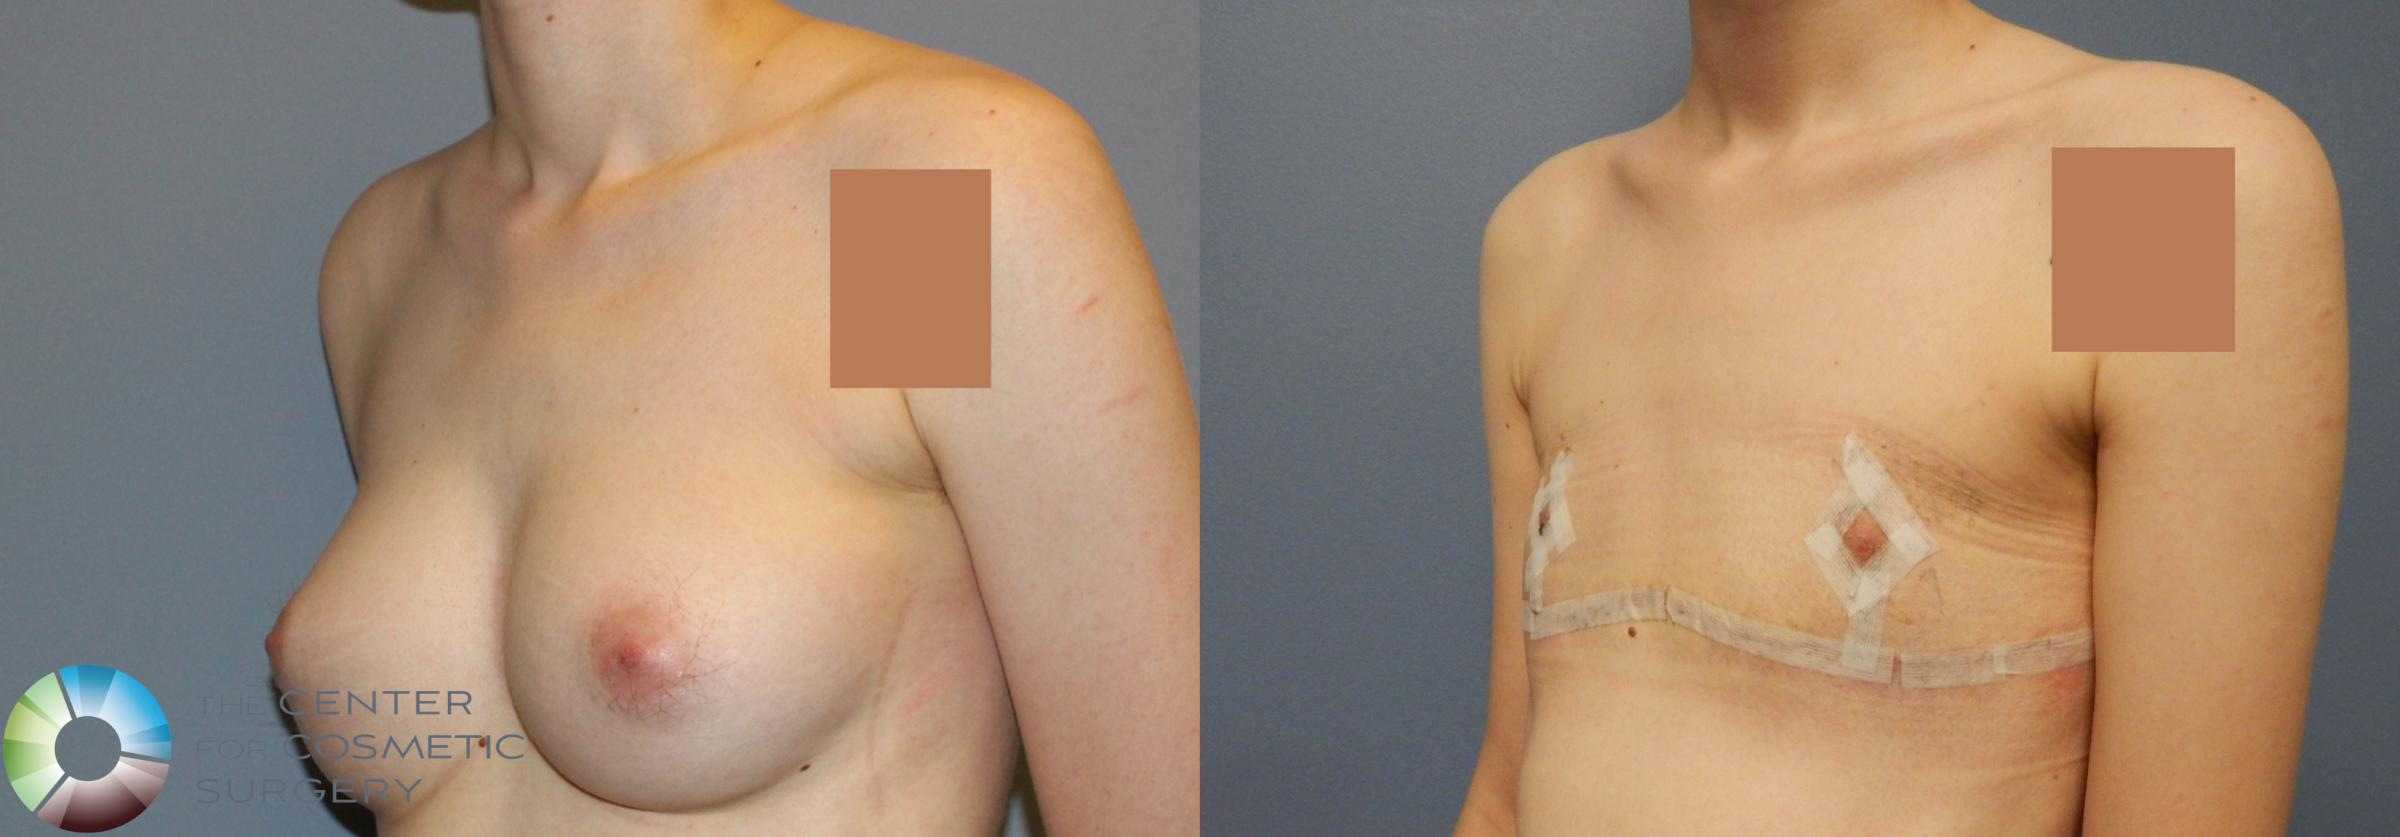 FTM Top Surgery/Chest Masculinization Case 857 Before & After View #2 | Golden, CO | The Center for Cosmetic Surgery